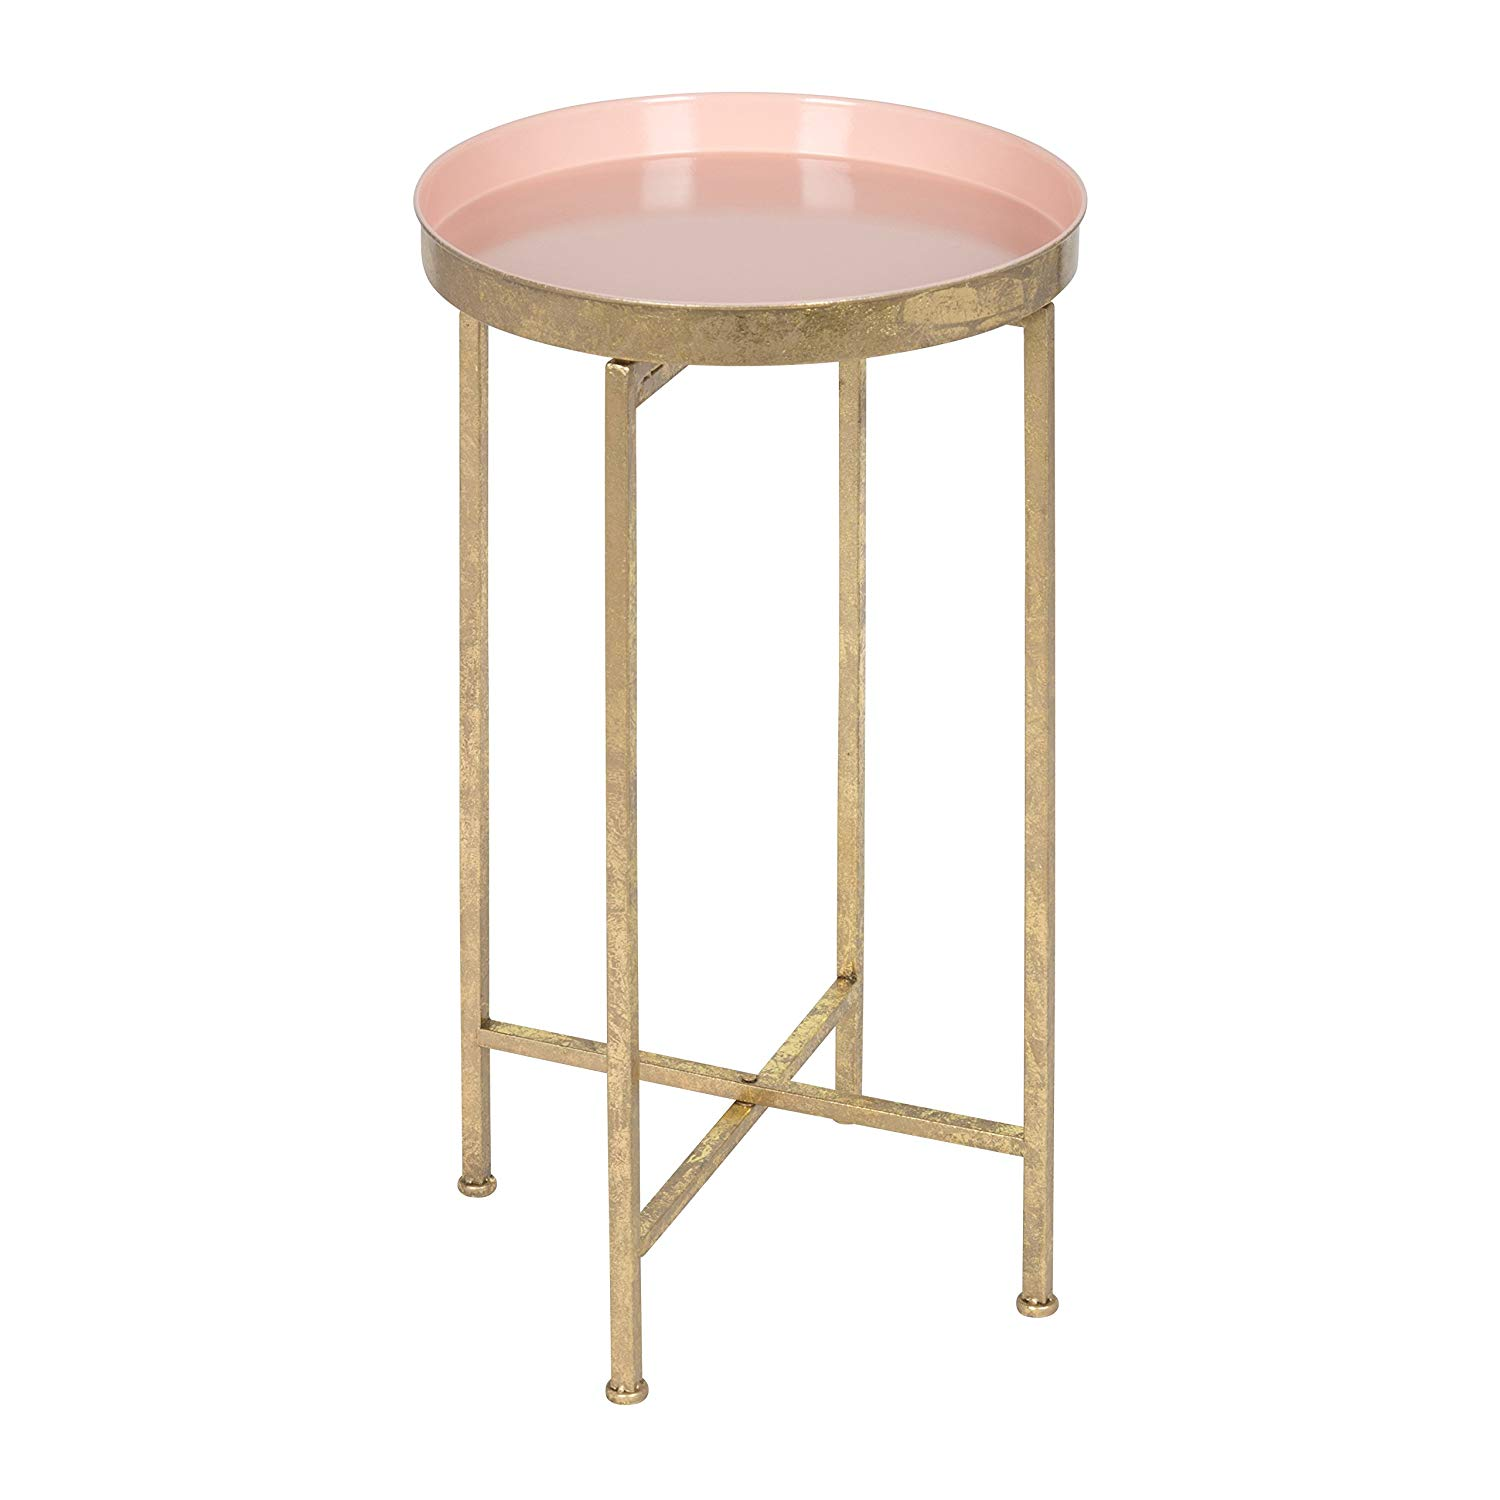 kate and laurel celia round metal foldable tray pink accent table gold home kitchen victorian occasional dale tiffany lamps antique roadshow monarch hall console cappuccino modern